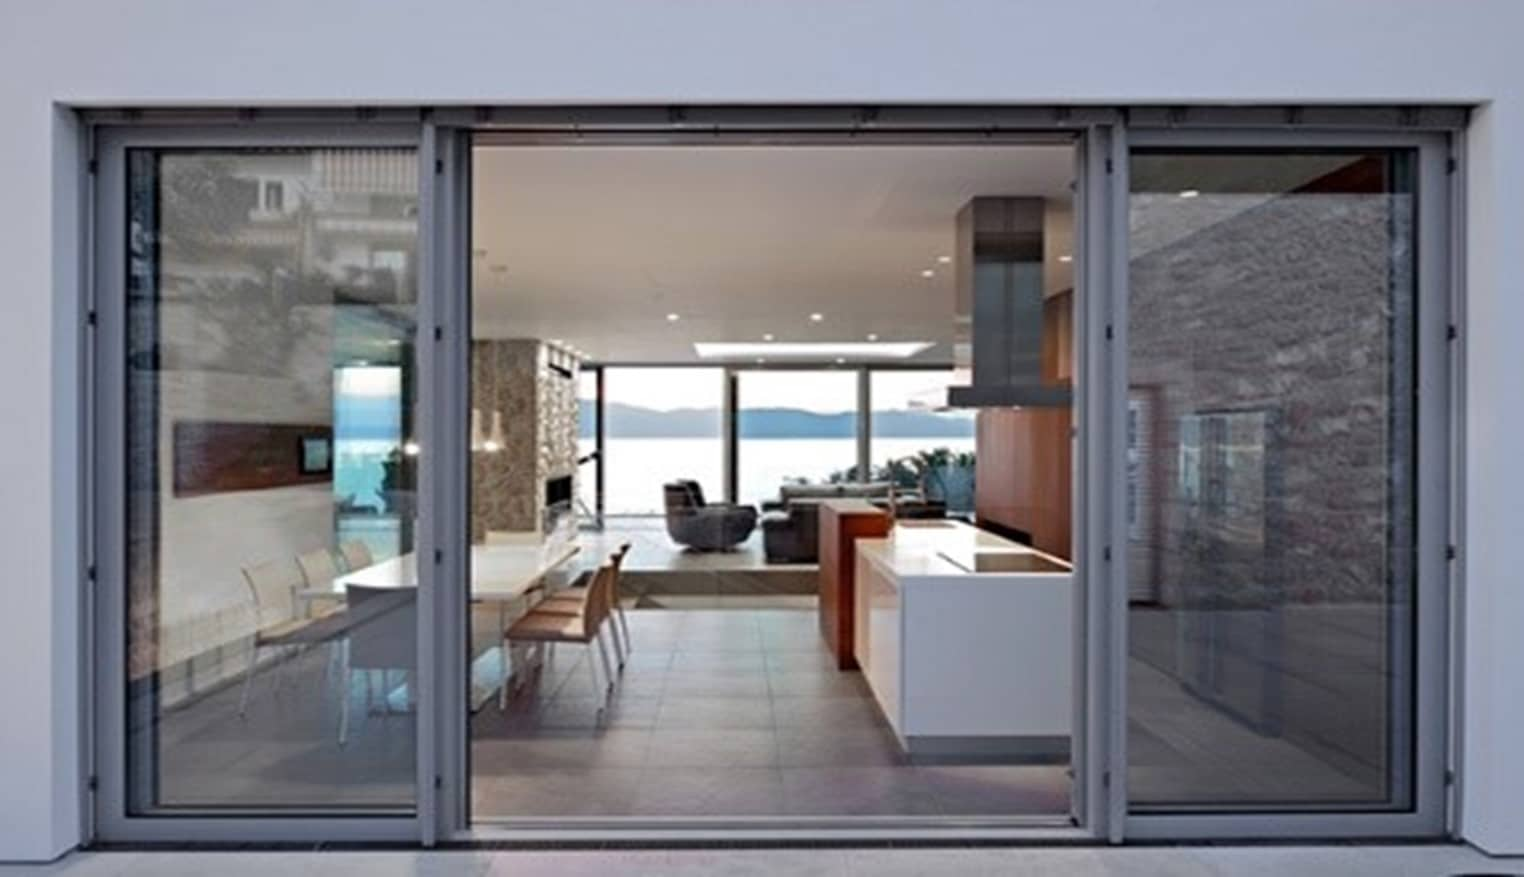 How to Make a Sliding Door Impenetrable? Getting the Job Done